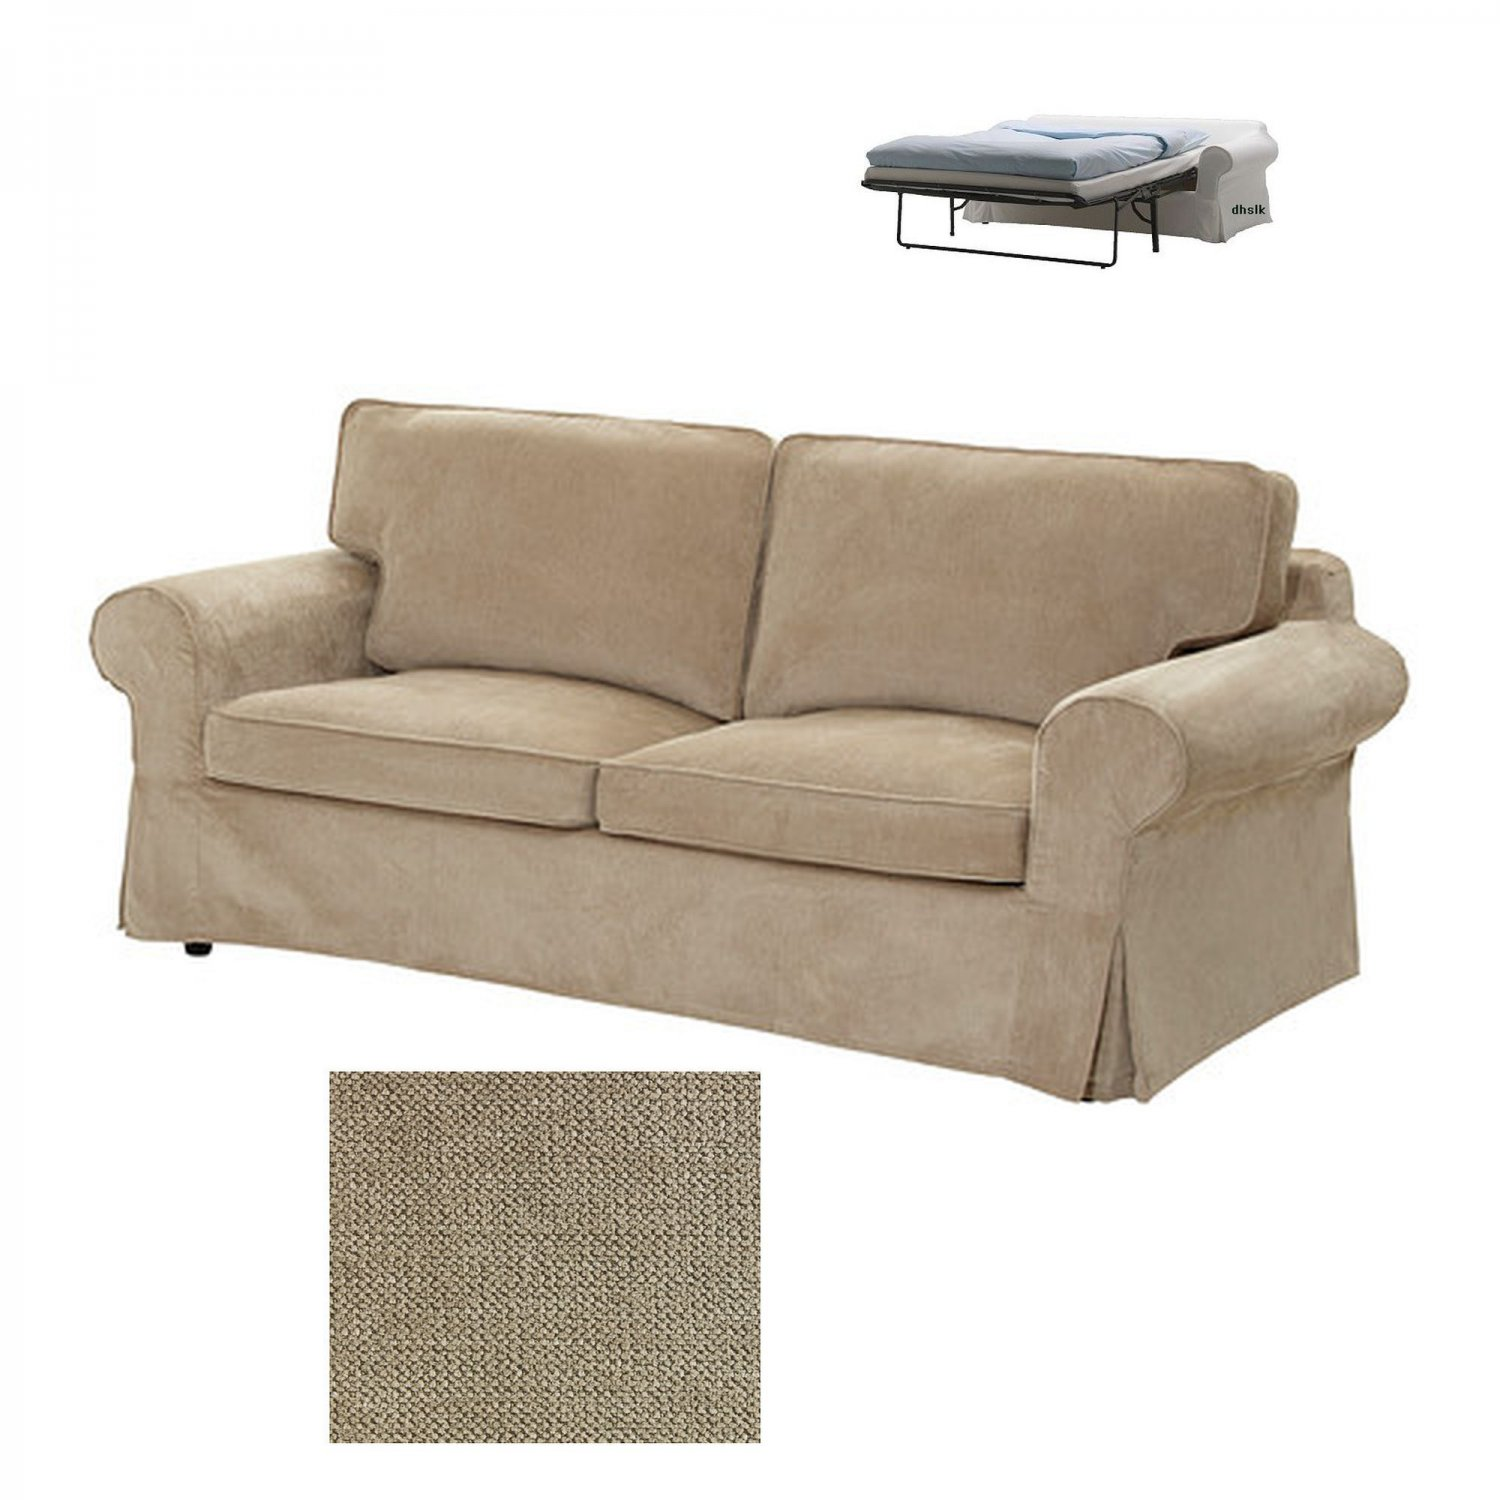 Ikea Ektorp 2 Seat Sofa Bed Slipcover Sofabed Cover